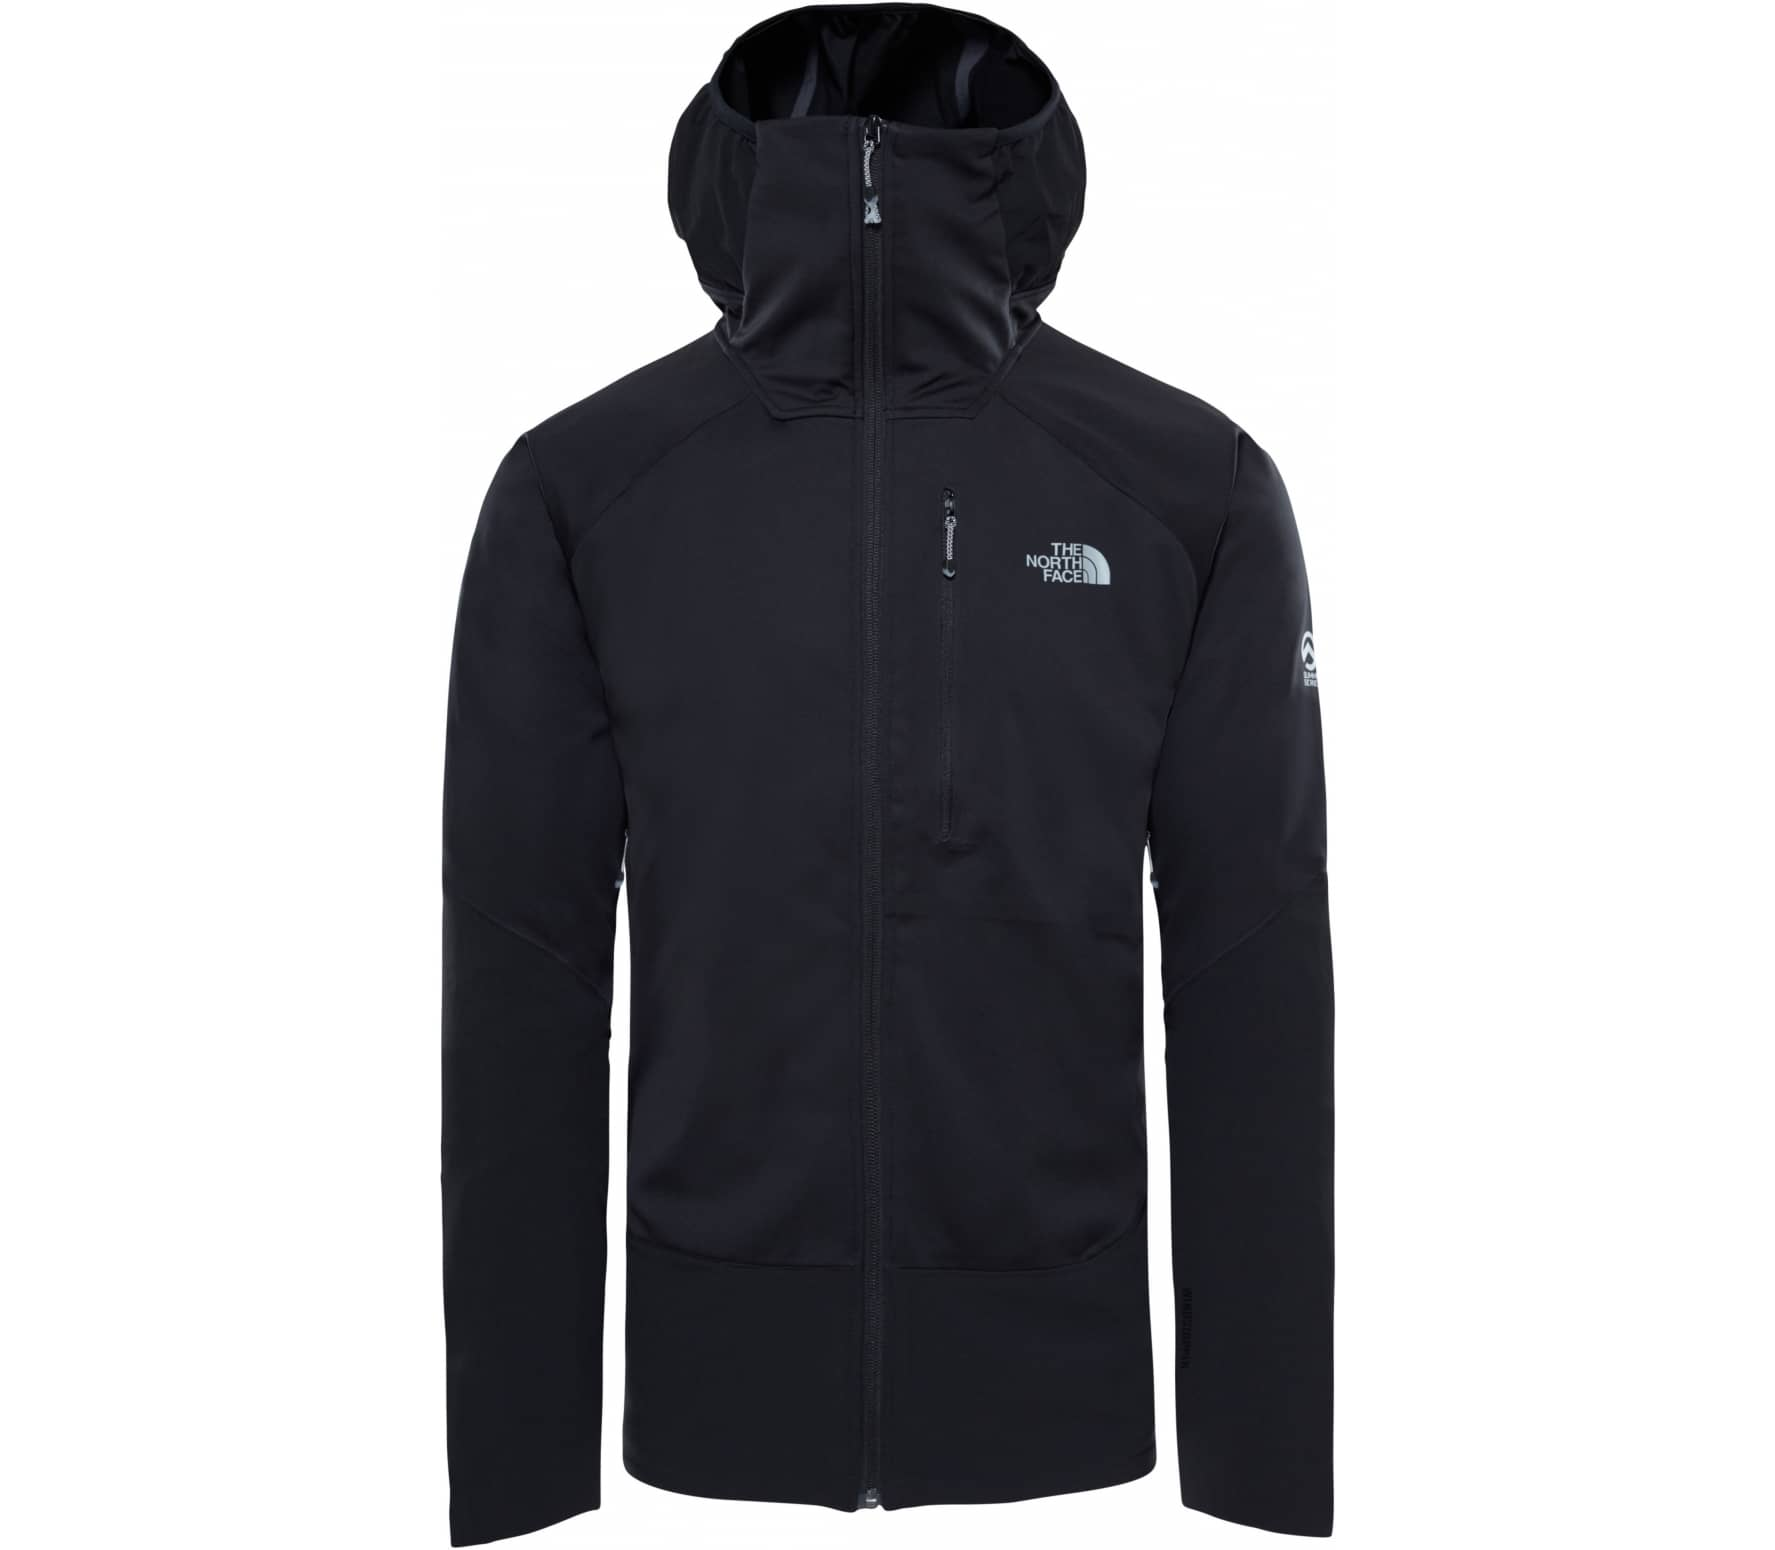 63fae0be ... inexpensive the north face summit l4 windstopper mens outdoor jacket  black black 8cfe4 669a1